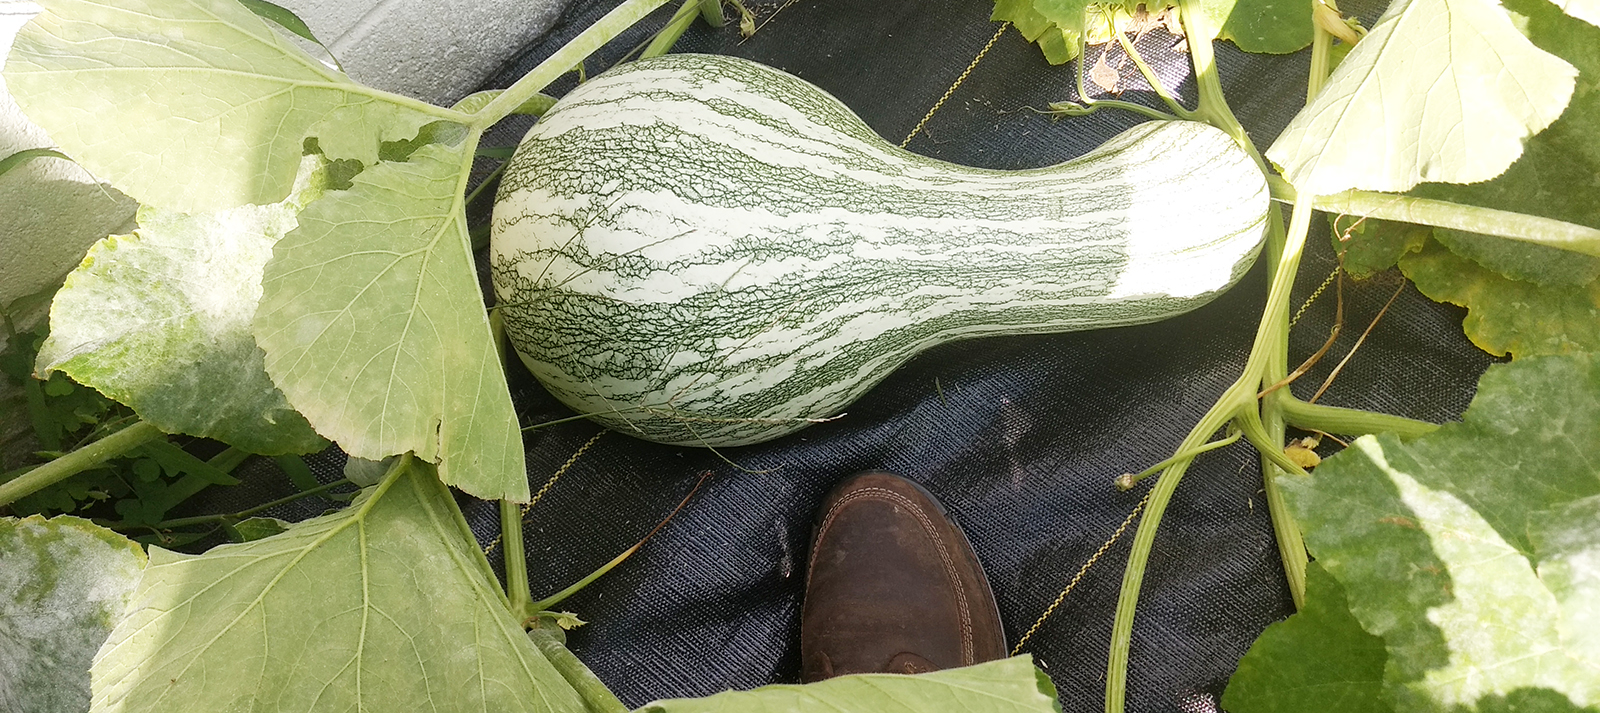 squash ready to be harvested for the heritage seeds project